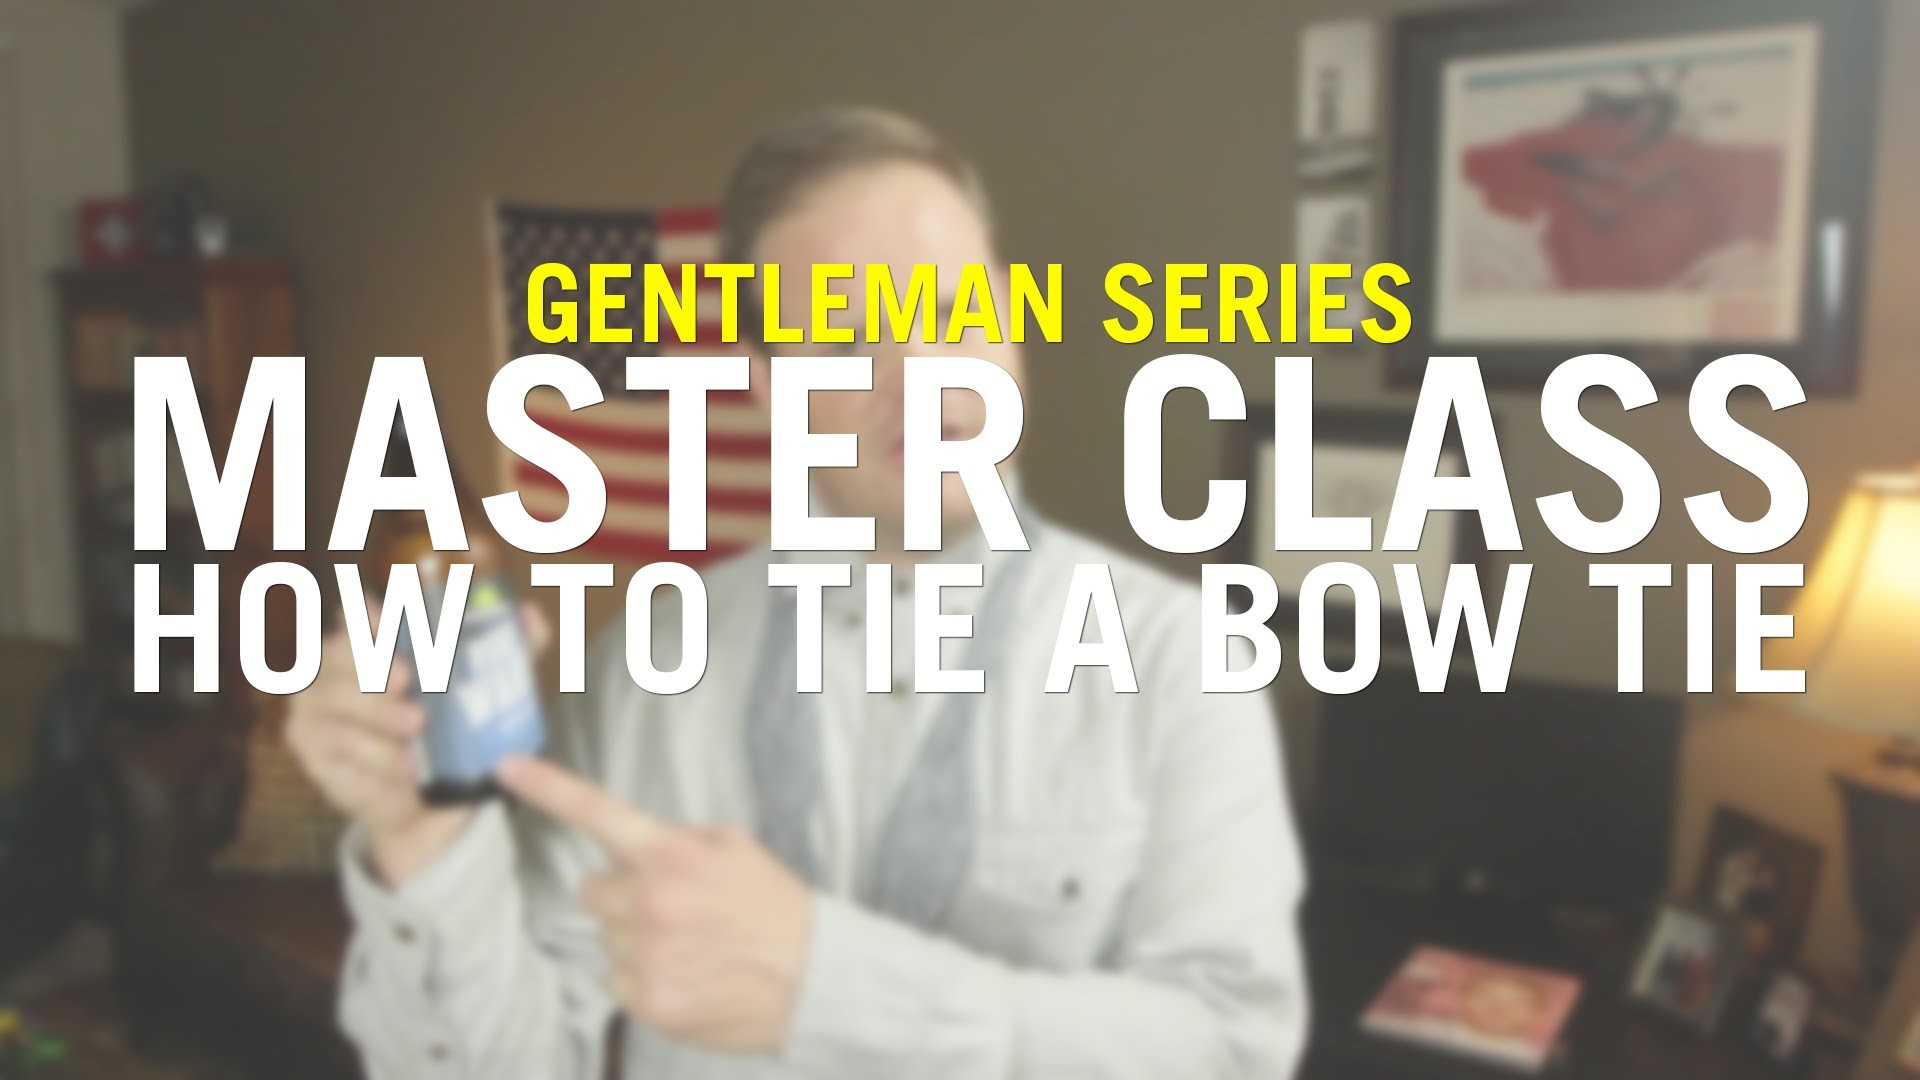 Master Class: How To Tie A Bow Tie